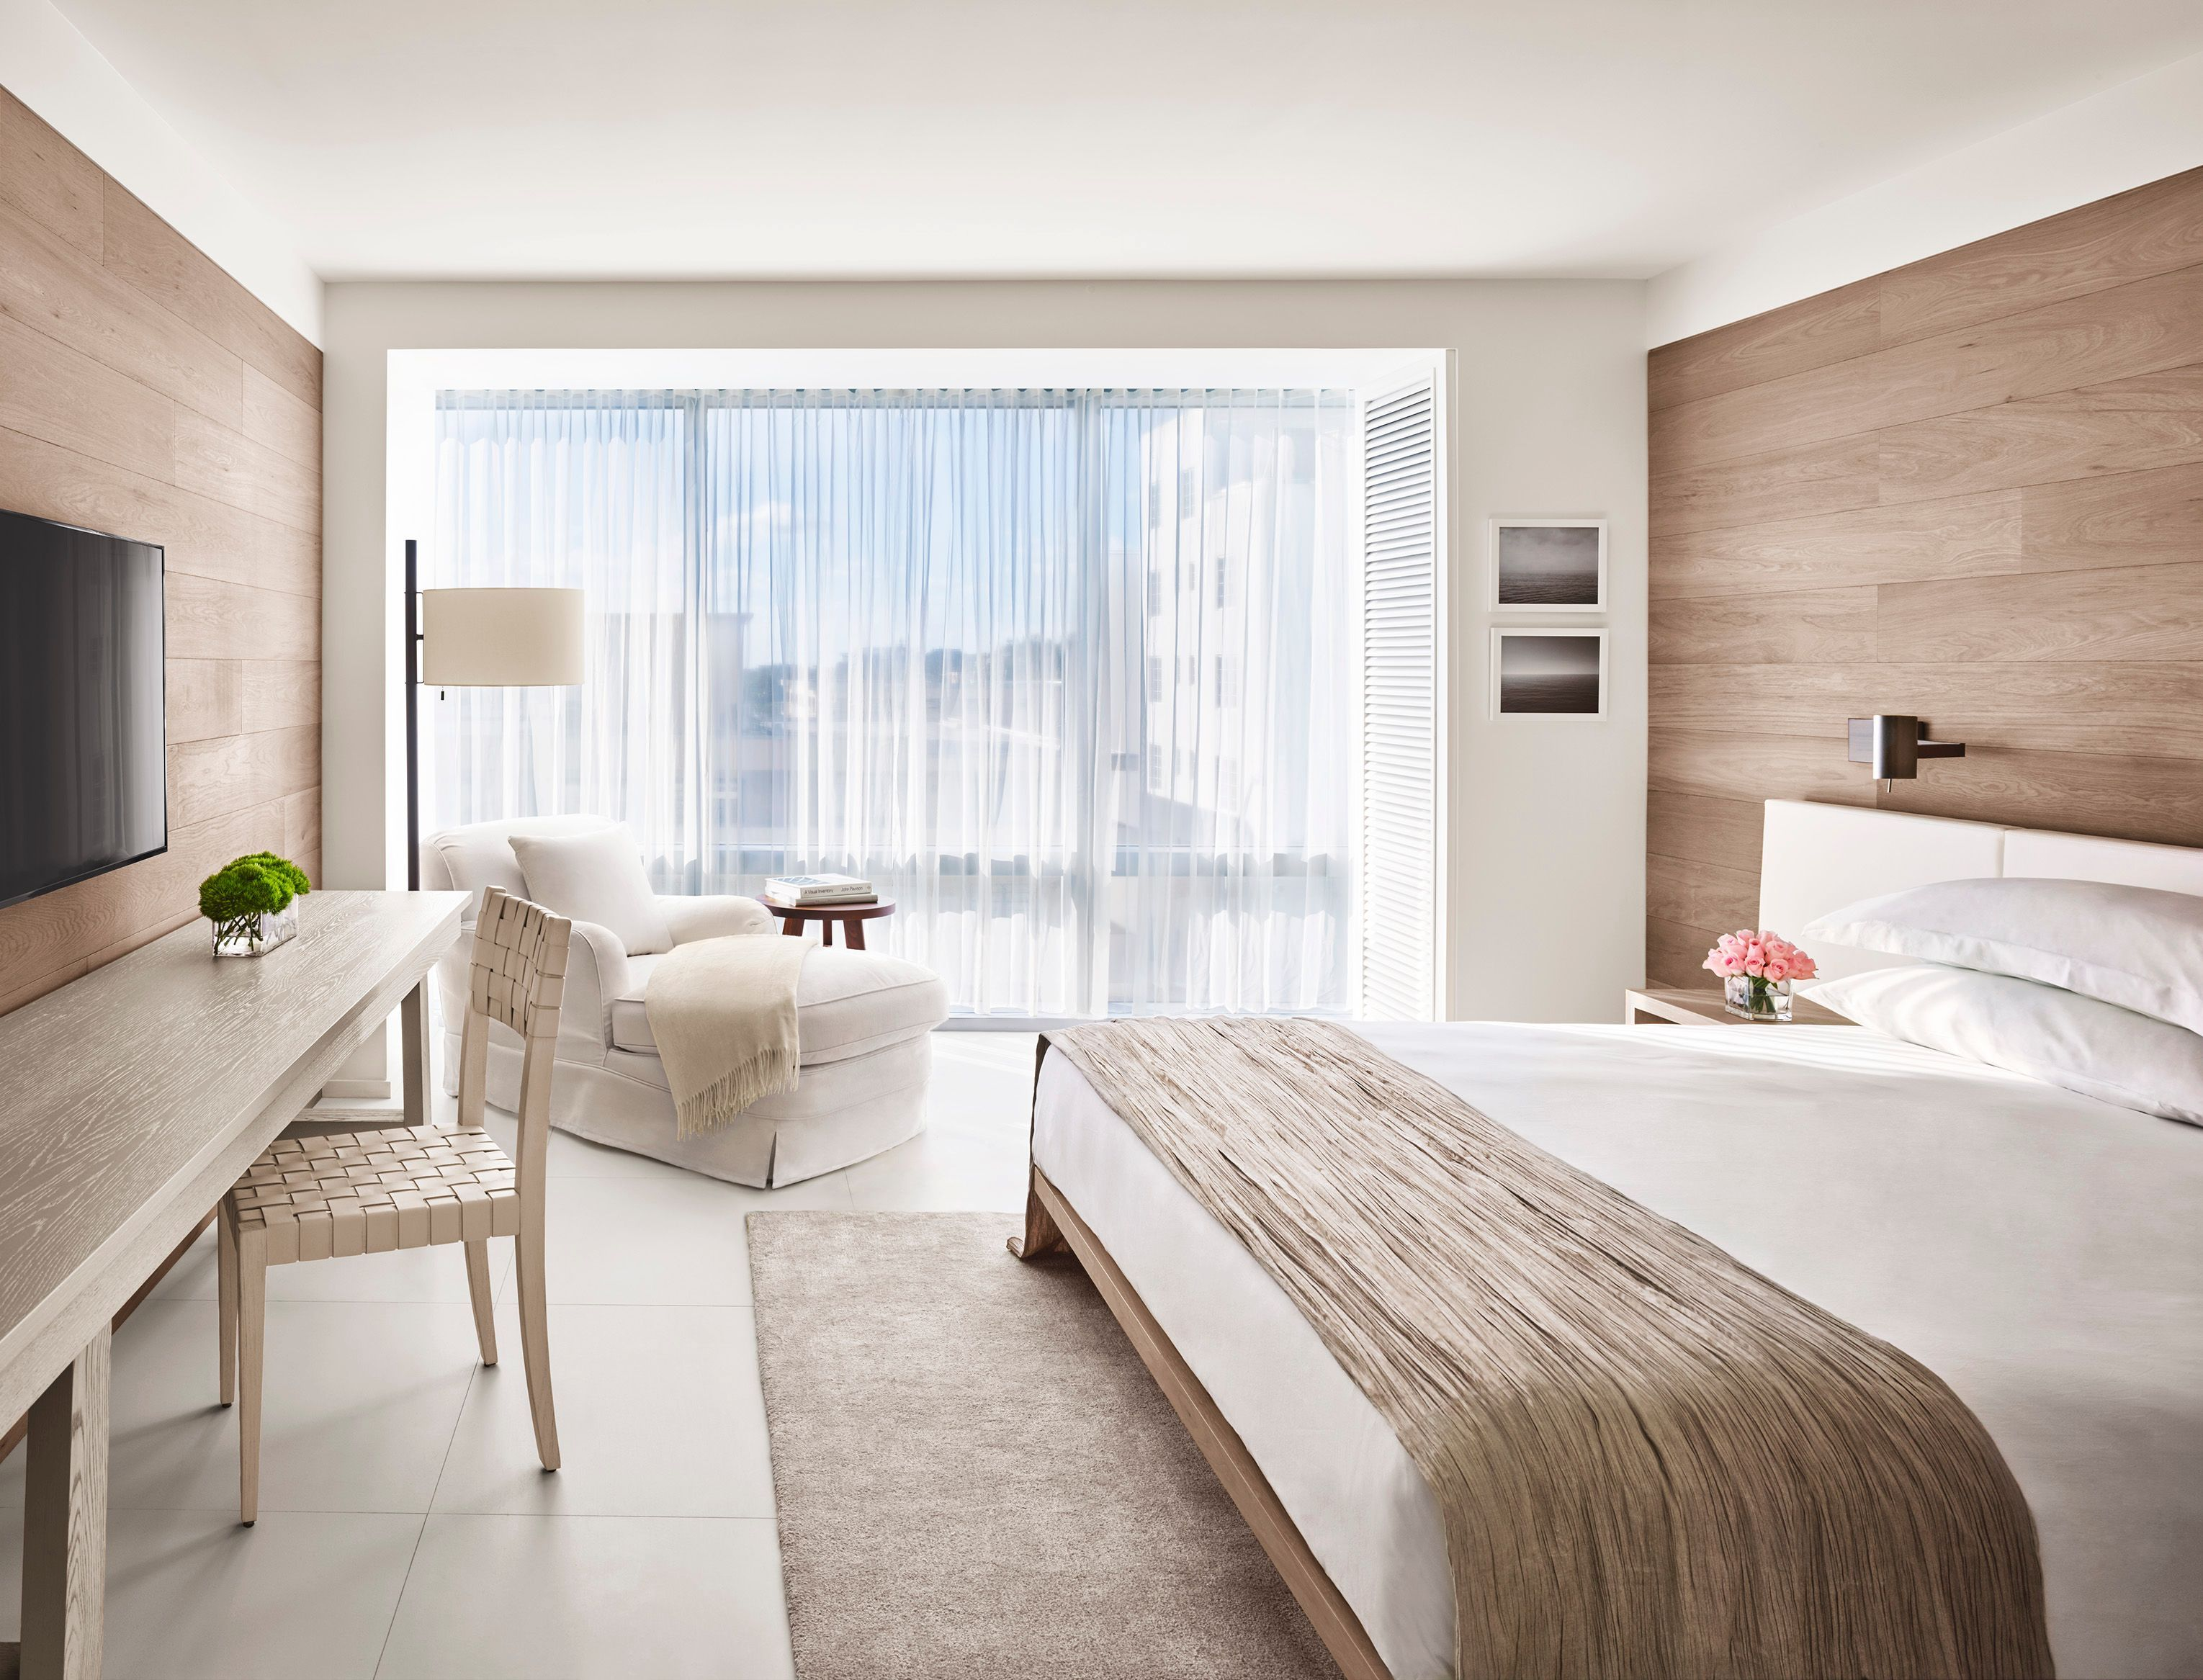 Yabu pushelberg the miami beach edition bedroom luxury for Small luxury beach hotels